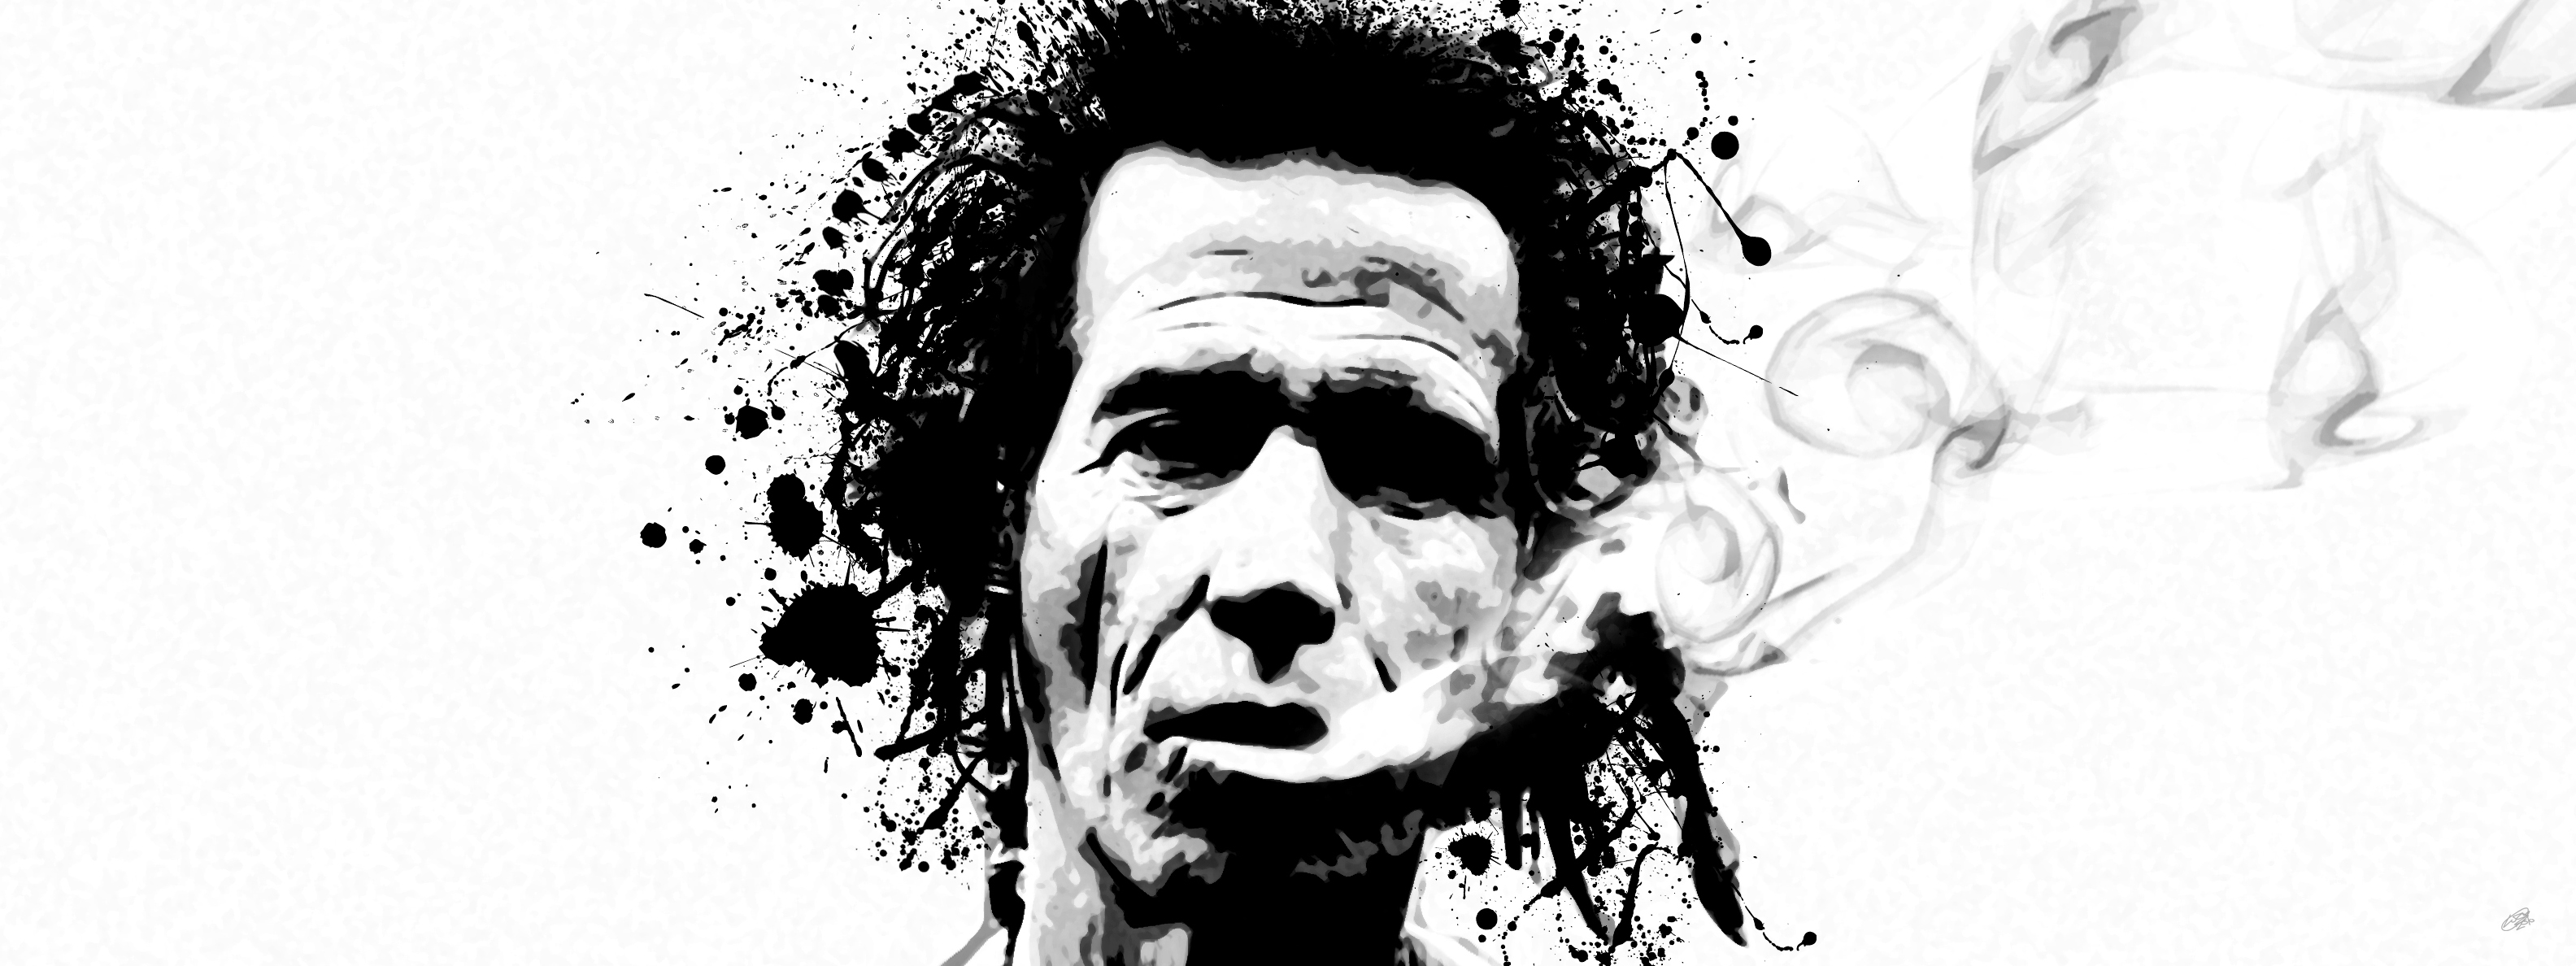 Keith Richards Clip Art.